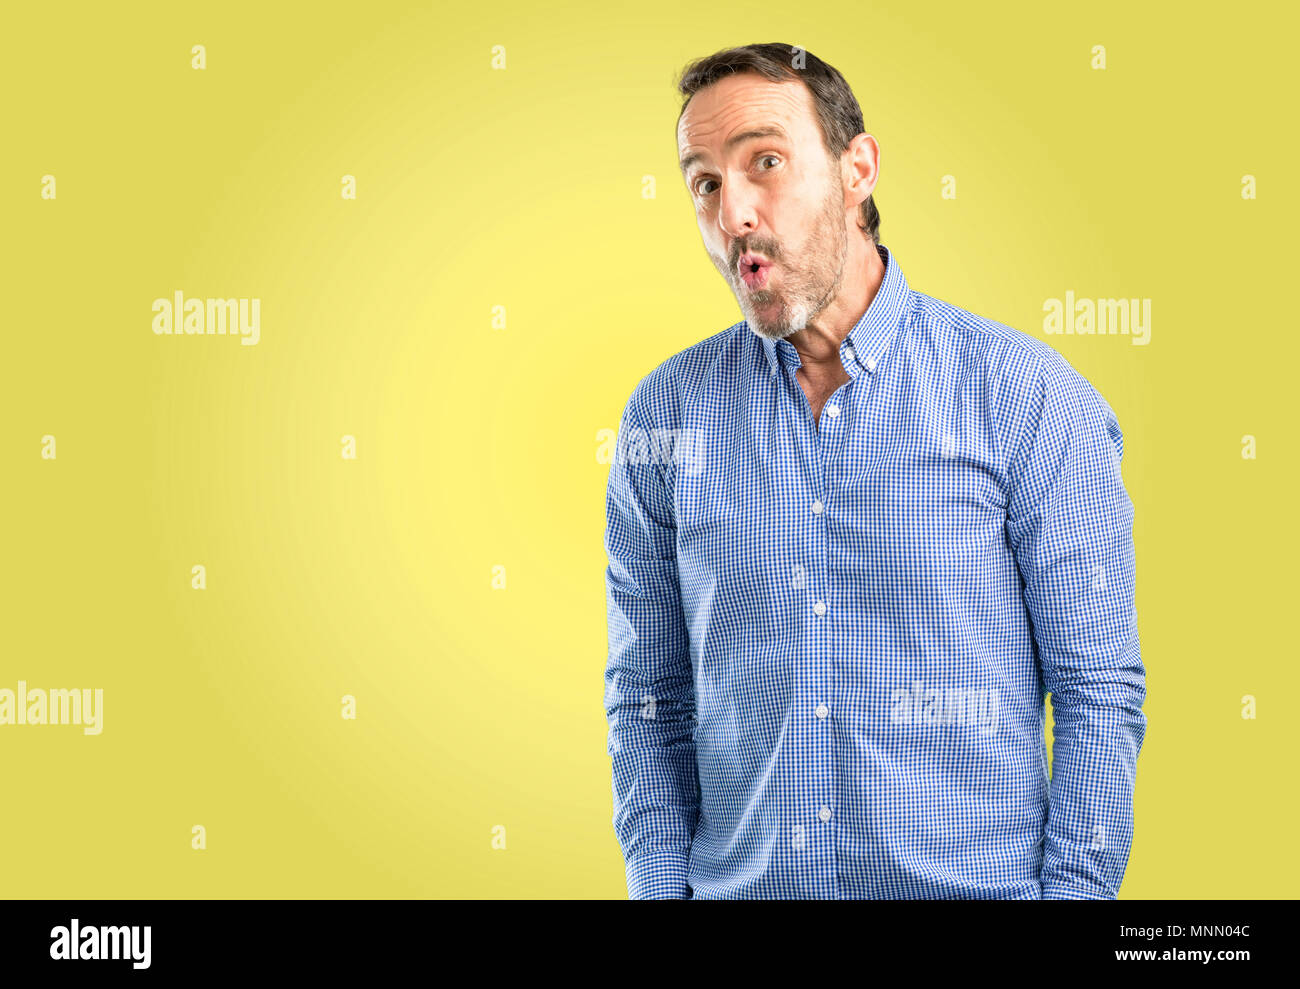 Handsome middle age man happy and surprised cheering expressing wow gesture - Stock Image